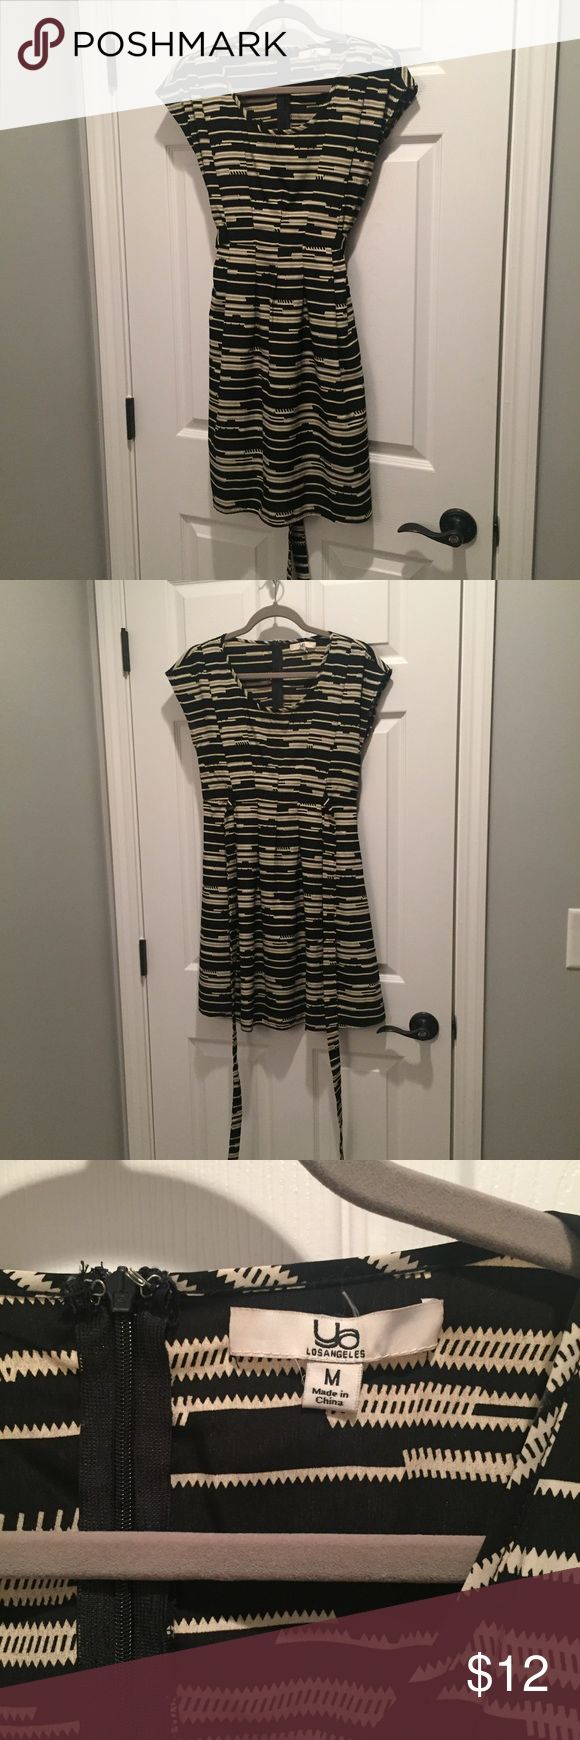 Boutique dress Boutique dress- black with tan aztec print. ties in back, cap sleeves, flattering a-line fit, excellent used condition - purchased from the boutique shop at Vanderbilt Children's Hospital Ya Los Angeles Dresses